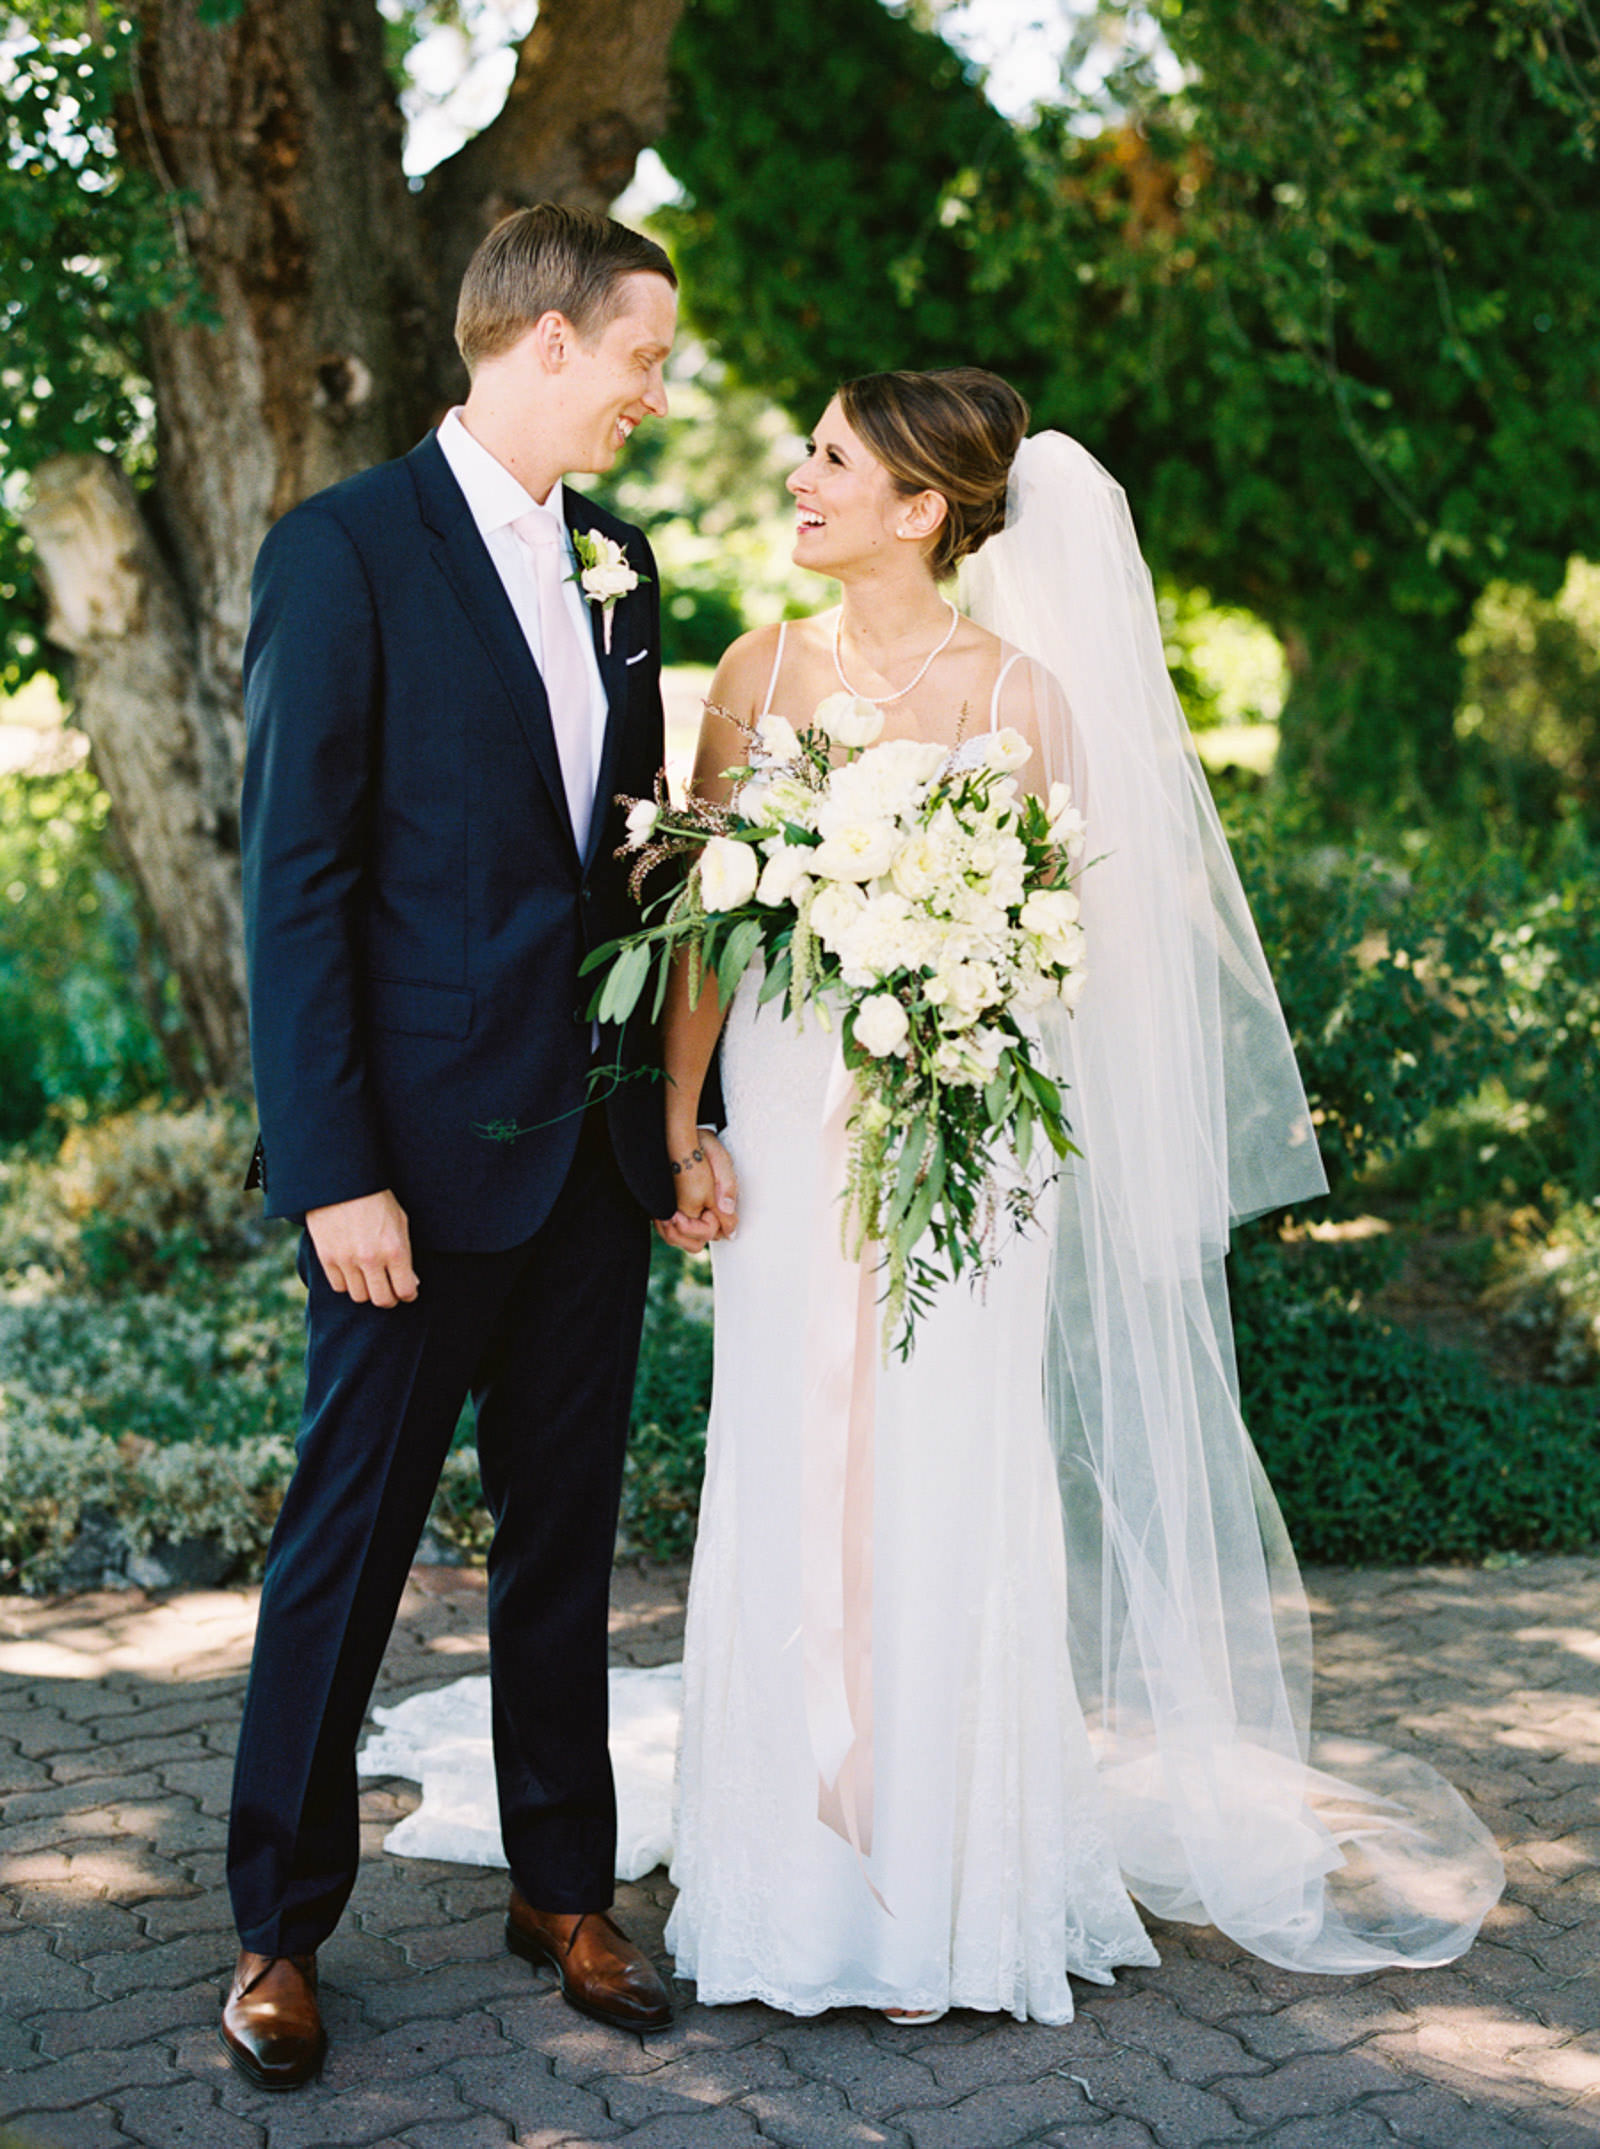 Classic bride and groom portrait at an Arbor Crest Winery wedding captured by top Spokane Wedding Photographer Anna Peters